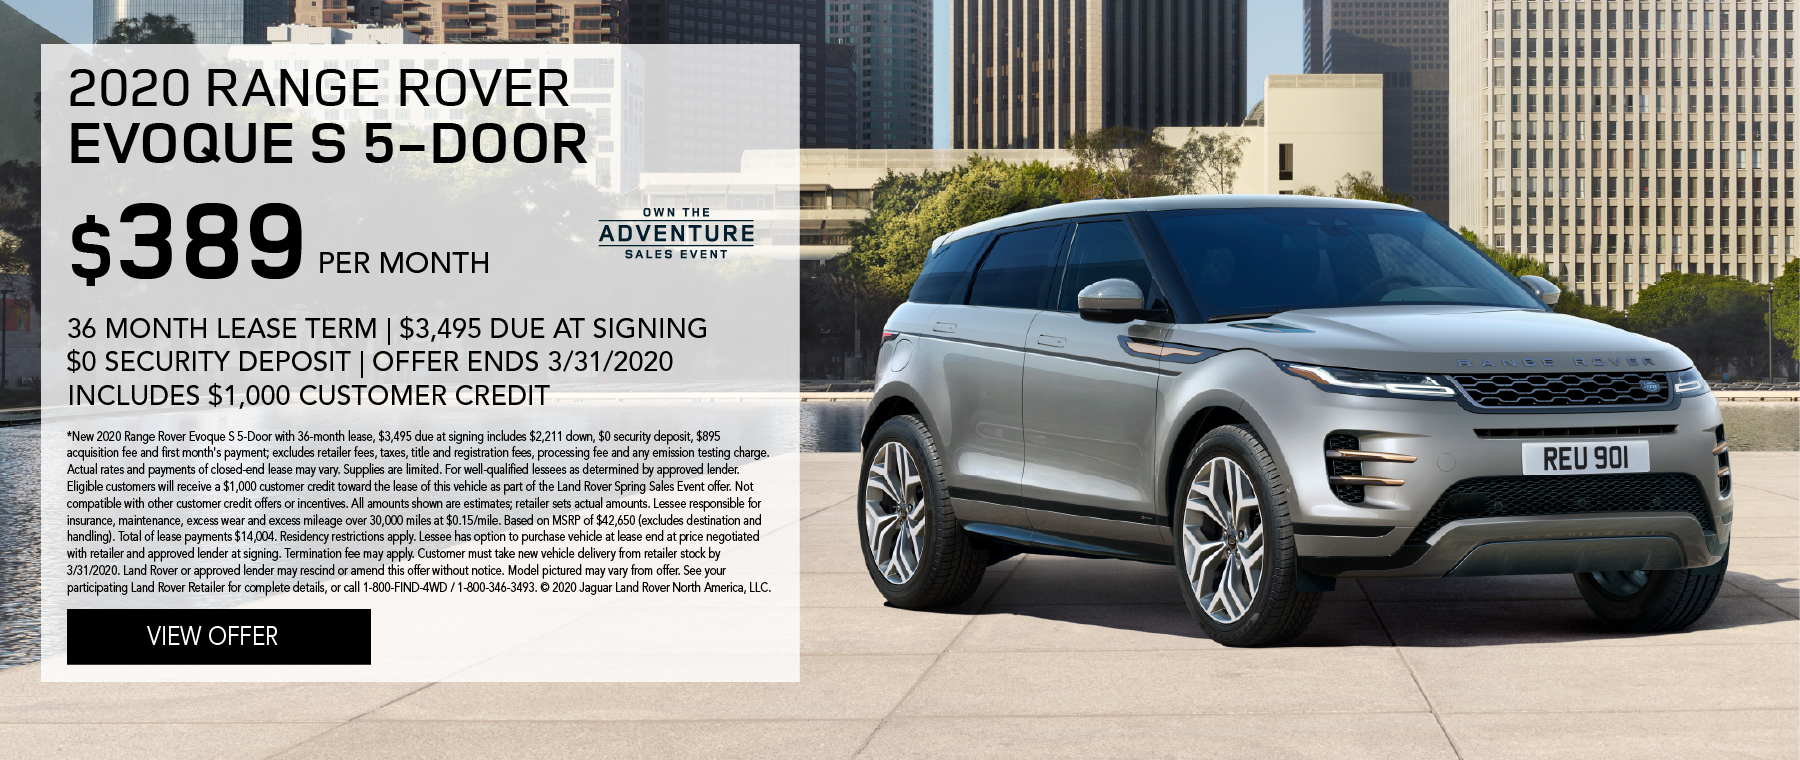 2020 RANGE ROVER EVOQUE S 5-DOOR PARKED ON PAVEMENT NEXT TO WATER FEATURE WITH CITY IN BACKGROUND. $389 PER MONTH. 36 MONTH LEASE TERM. $3,495 CASH DUE AT SIGNING. INCLUDES $1,000 CUSTOMER CREDIT. $0 SECURITY DEPOSIT. 10,000 MILES PER YEAR. OFFER ENDS 3/31/2020. OWN THE ADVENTURE SALES EVENT.